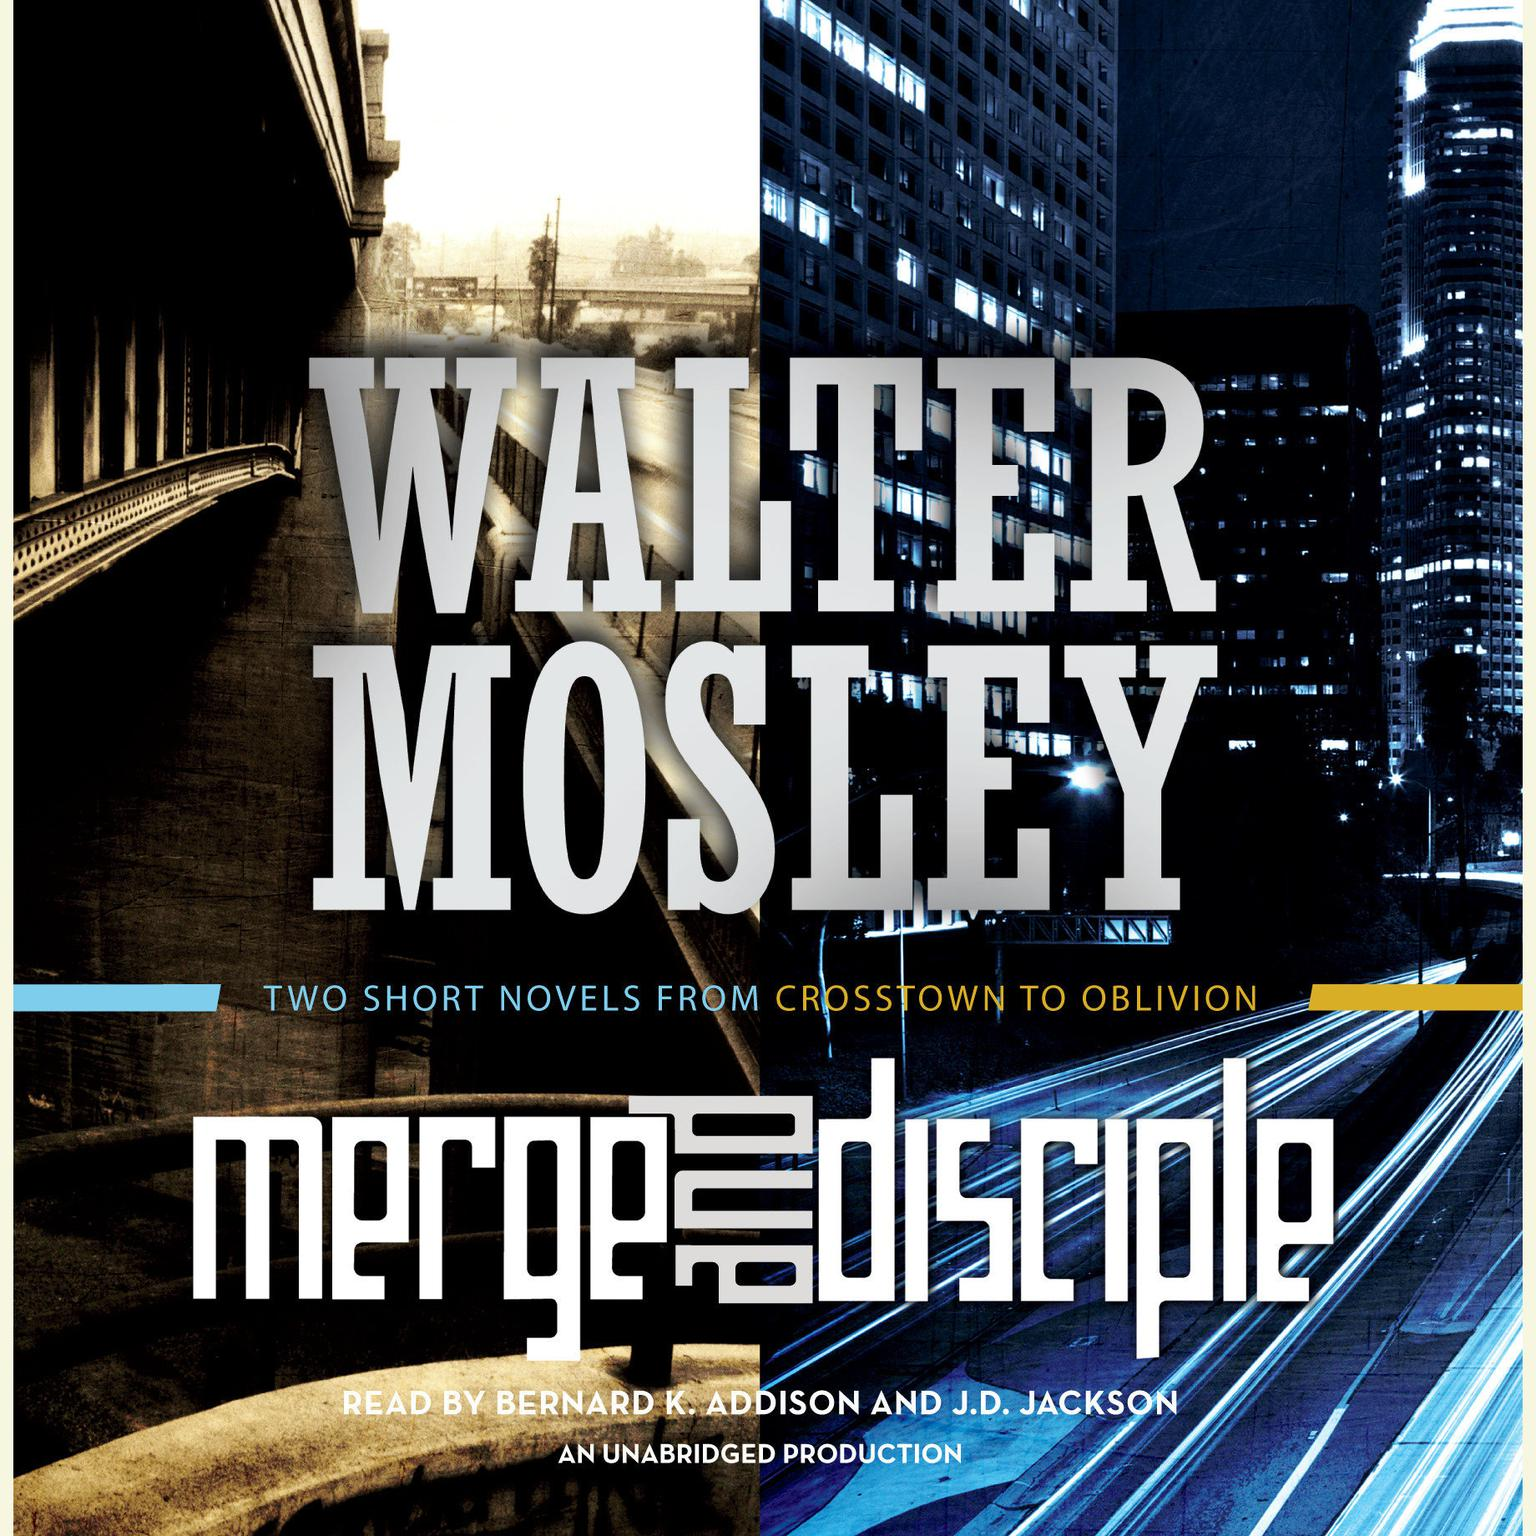 Printable Merge / Disciple: Two Short Novels from Crosstown to Oblivion Audiobook Cover Art